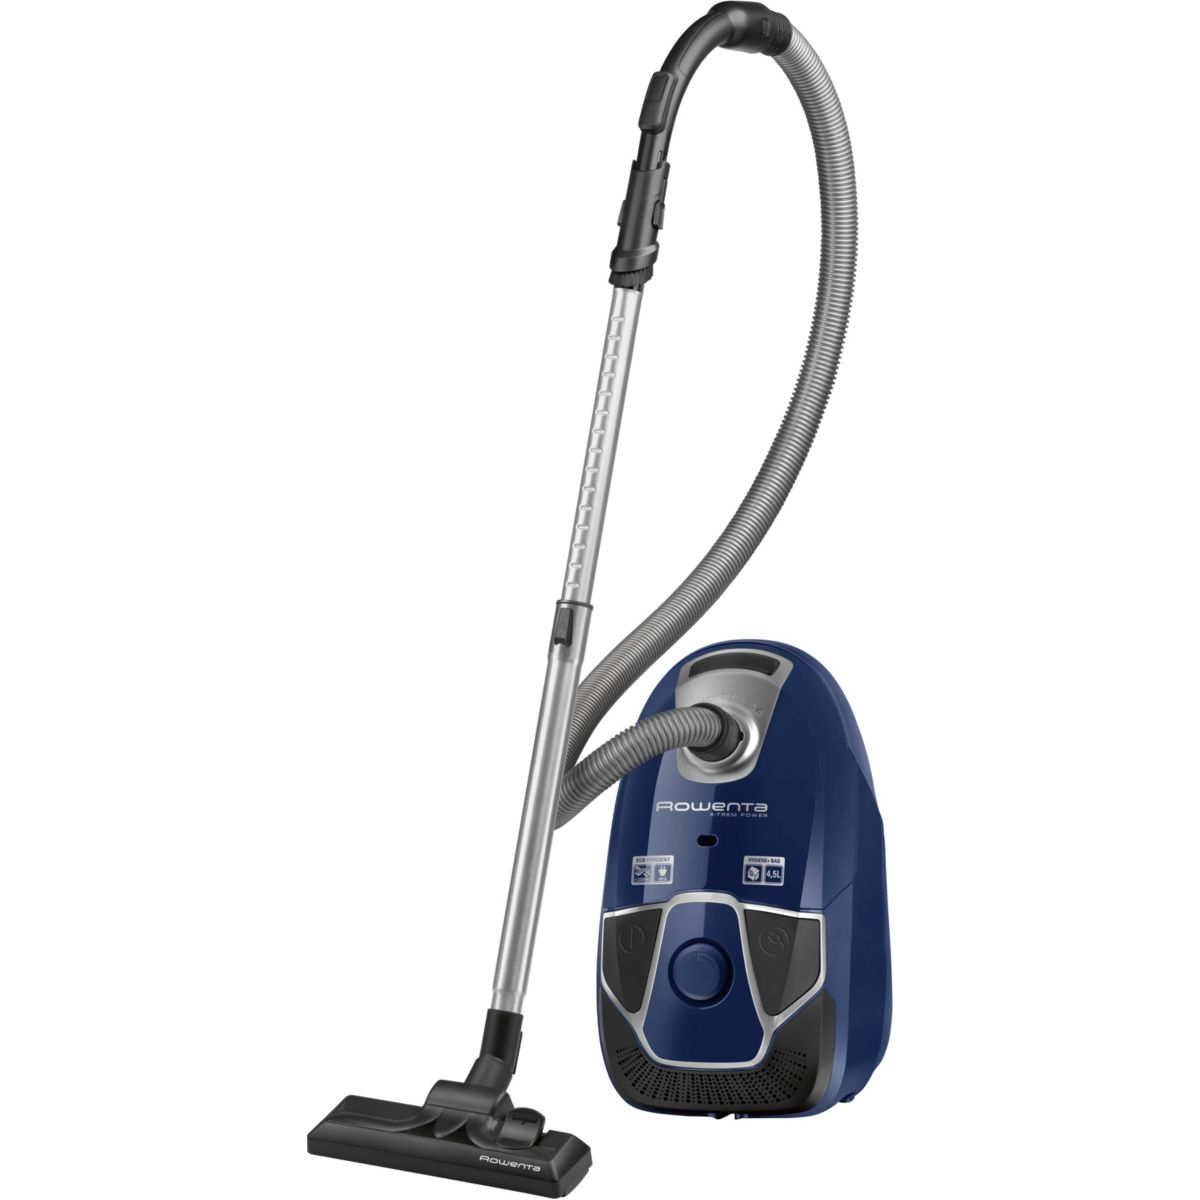 Aspirateur avec sac ROWENTA RO6821EA X-trem power (photo)